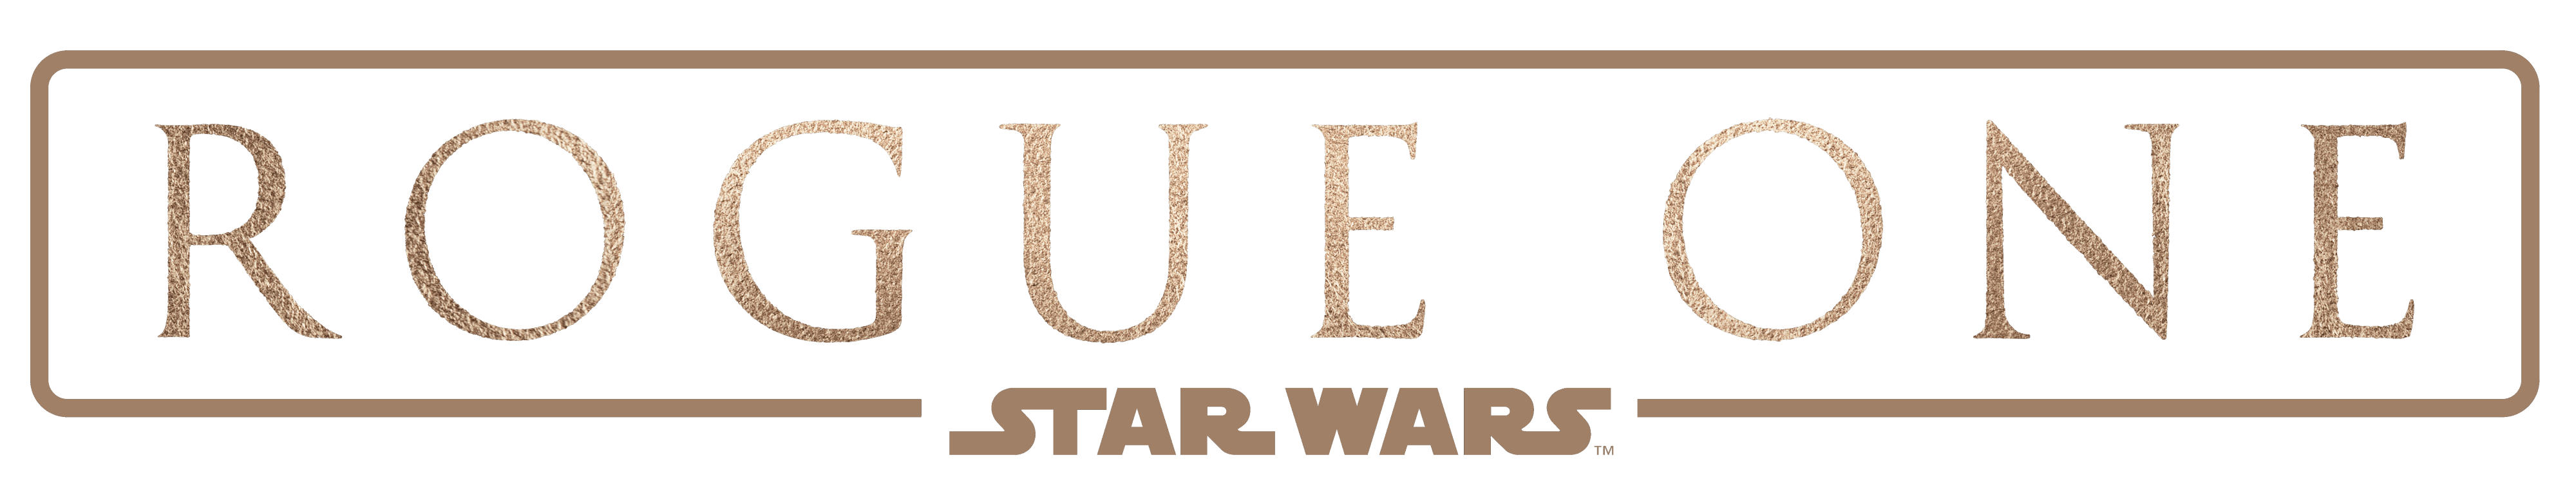 Star wars rogue one clipart picture black and white library Rogue One Logo picture black and white library